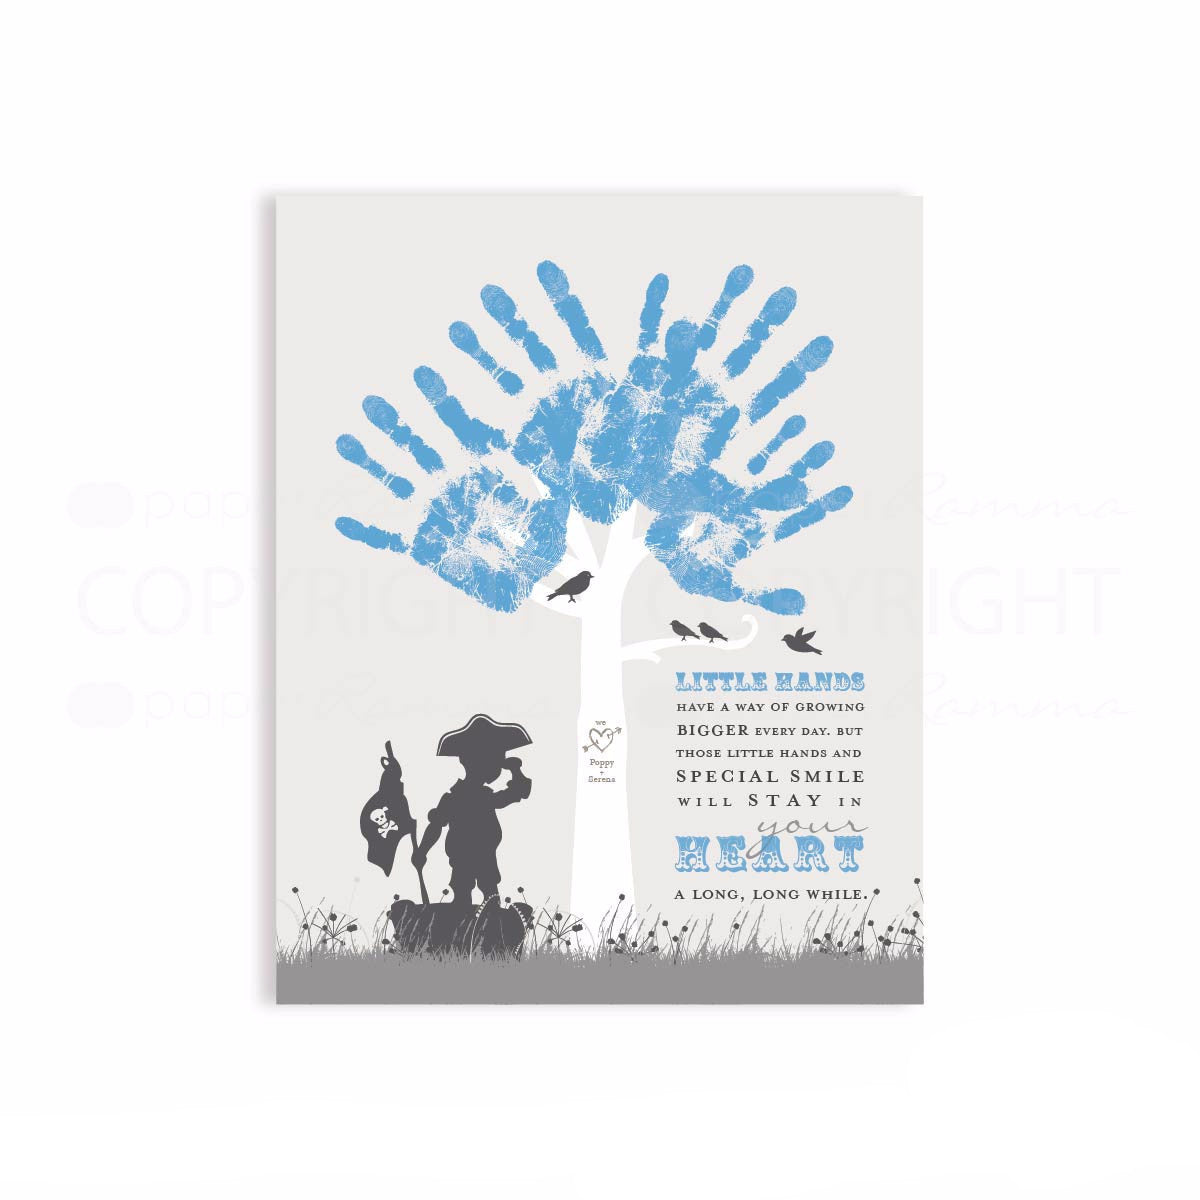 DIY Handprint Tree with Children's Silhouettes